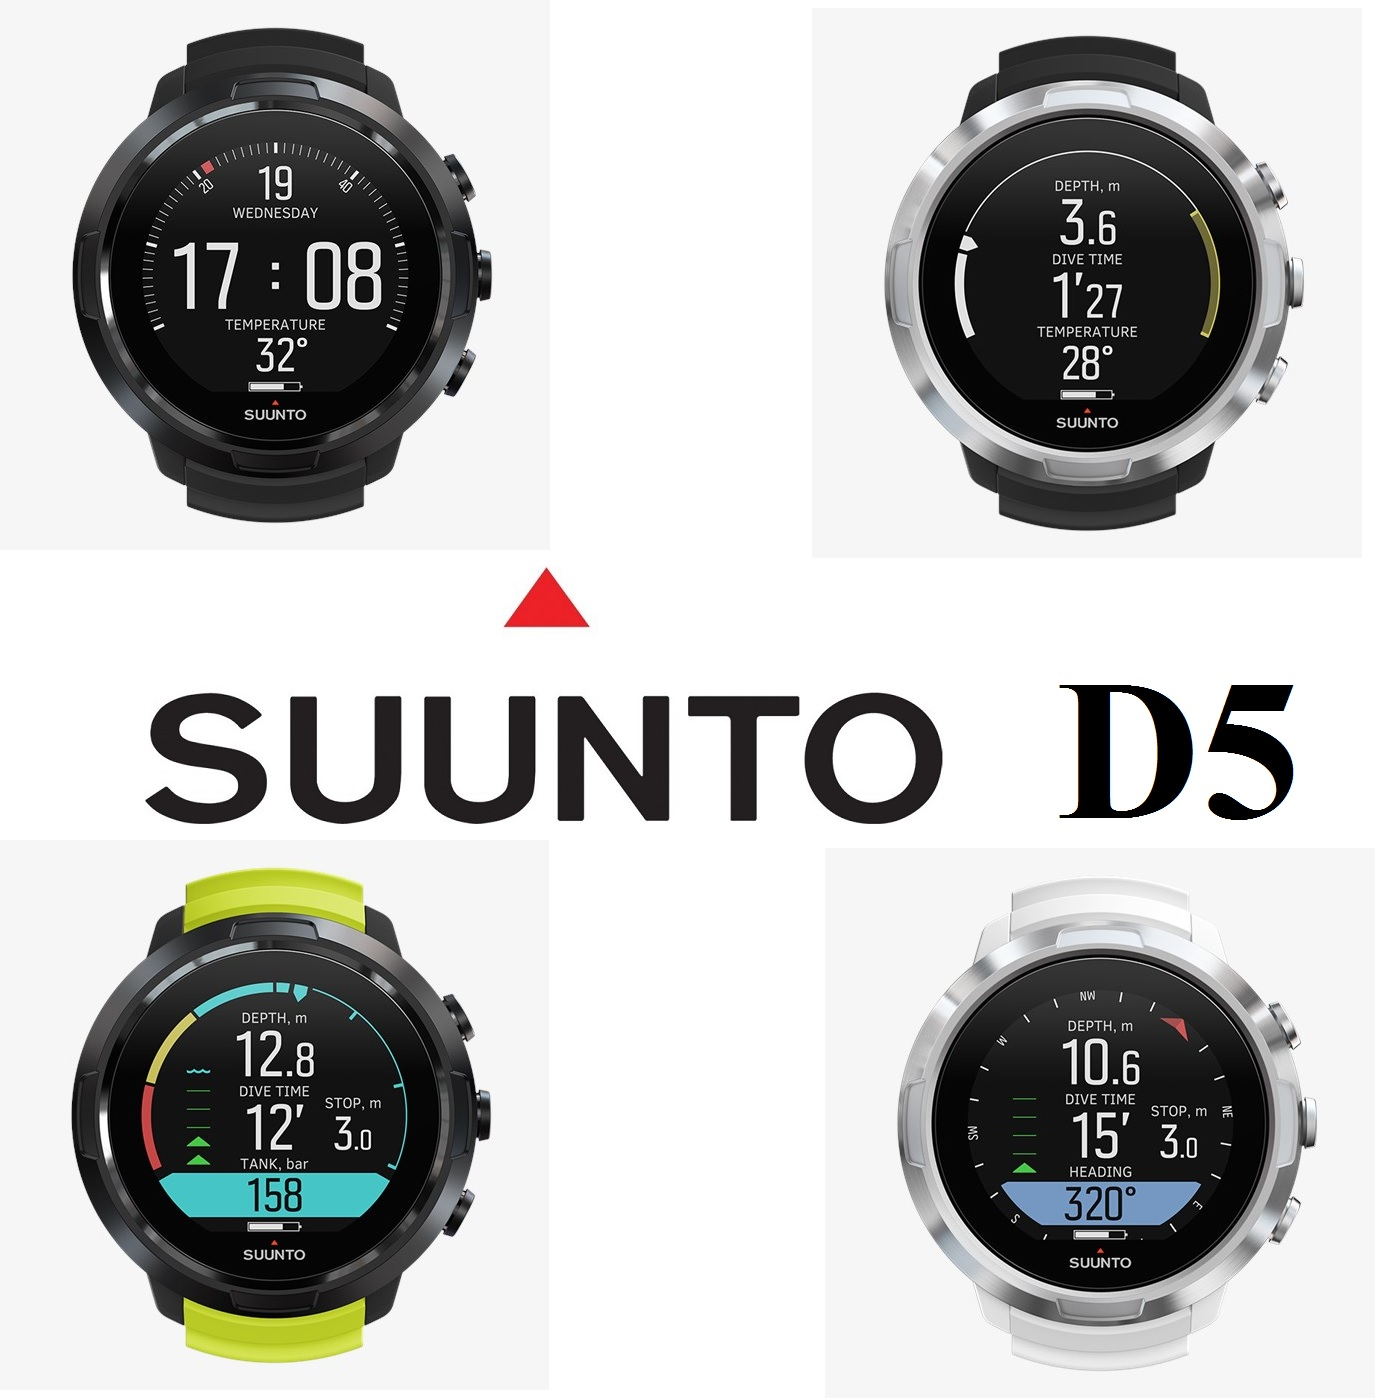 SUUNTO D5 The Dive Computer - Black